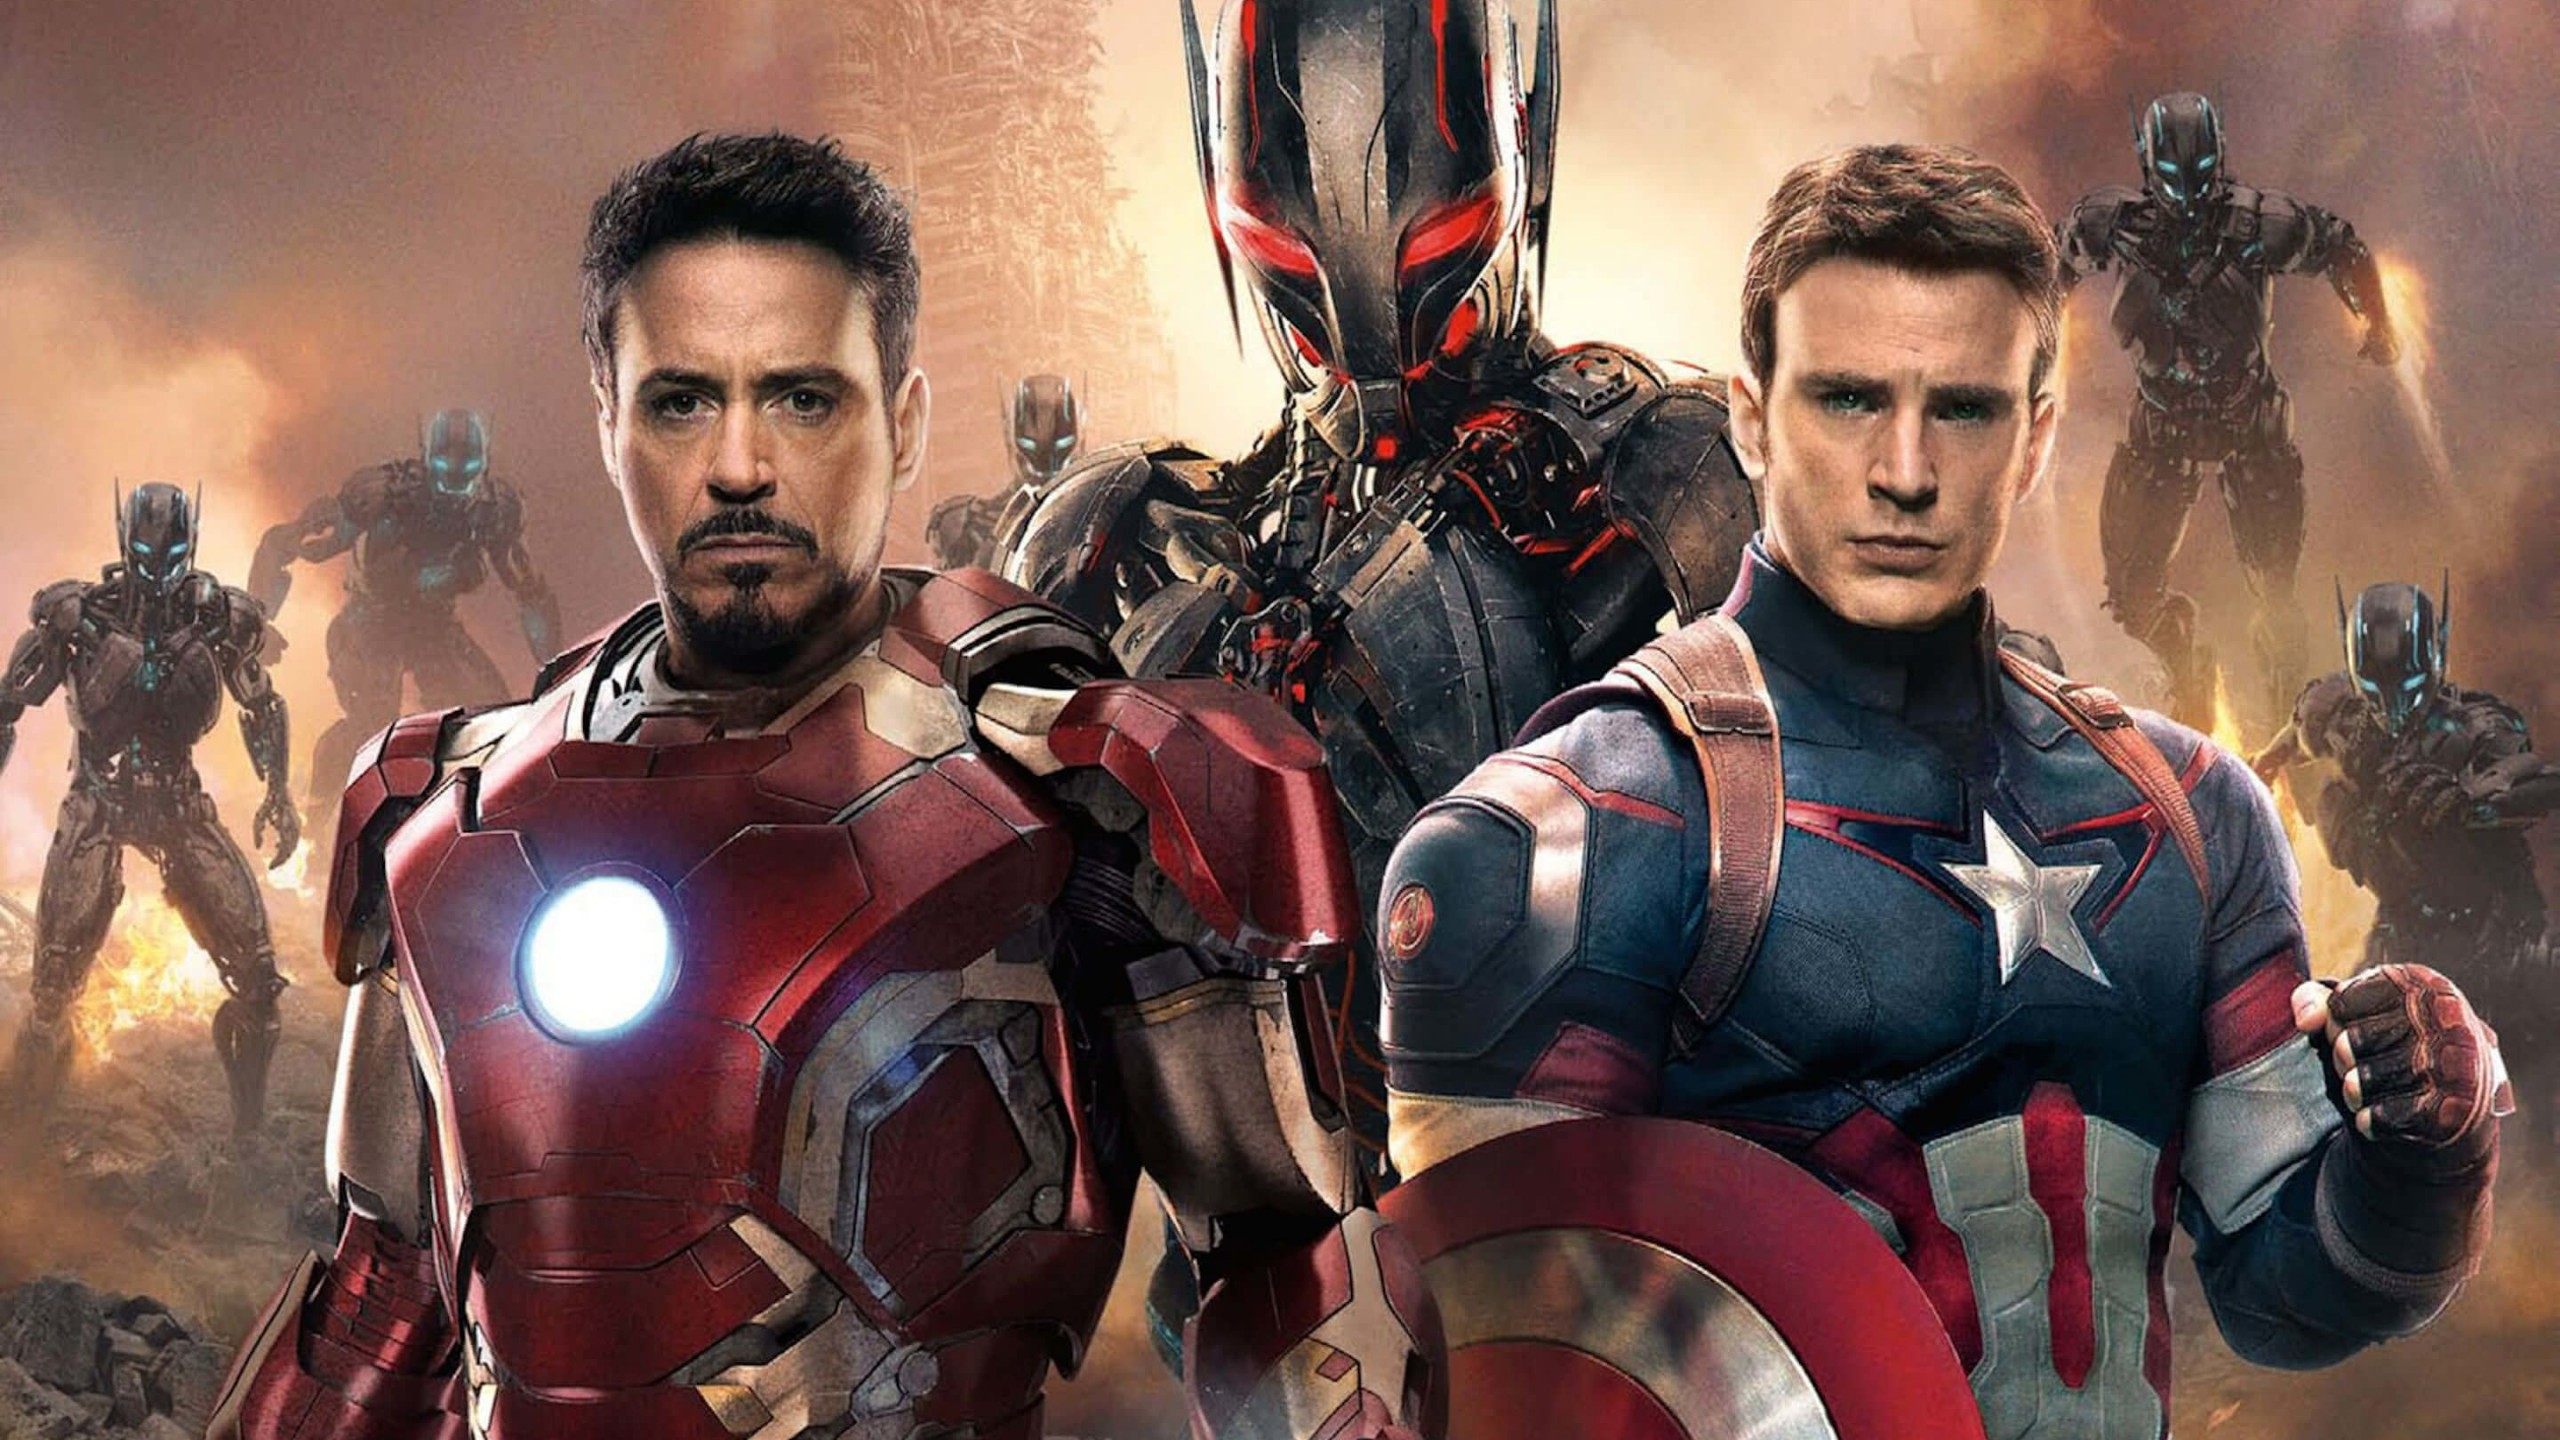 The Avengers: Age of Ultron - Iron Man and Captain America Wallpaper for Social Media YouTube Channel Art